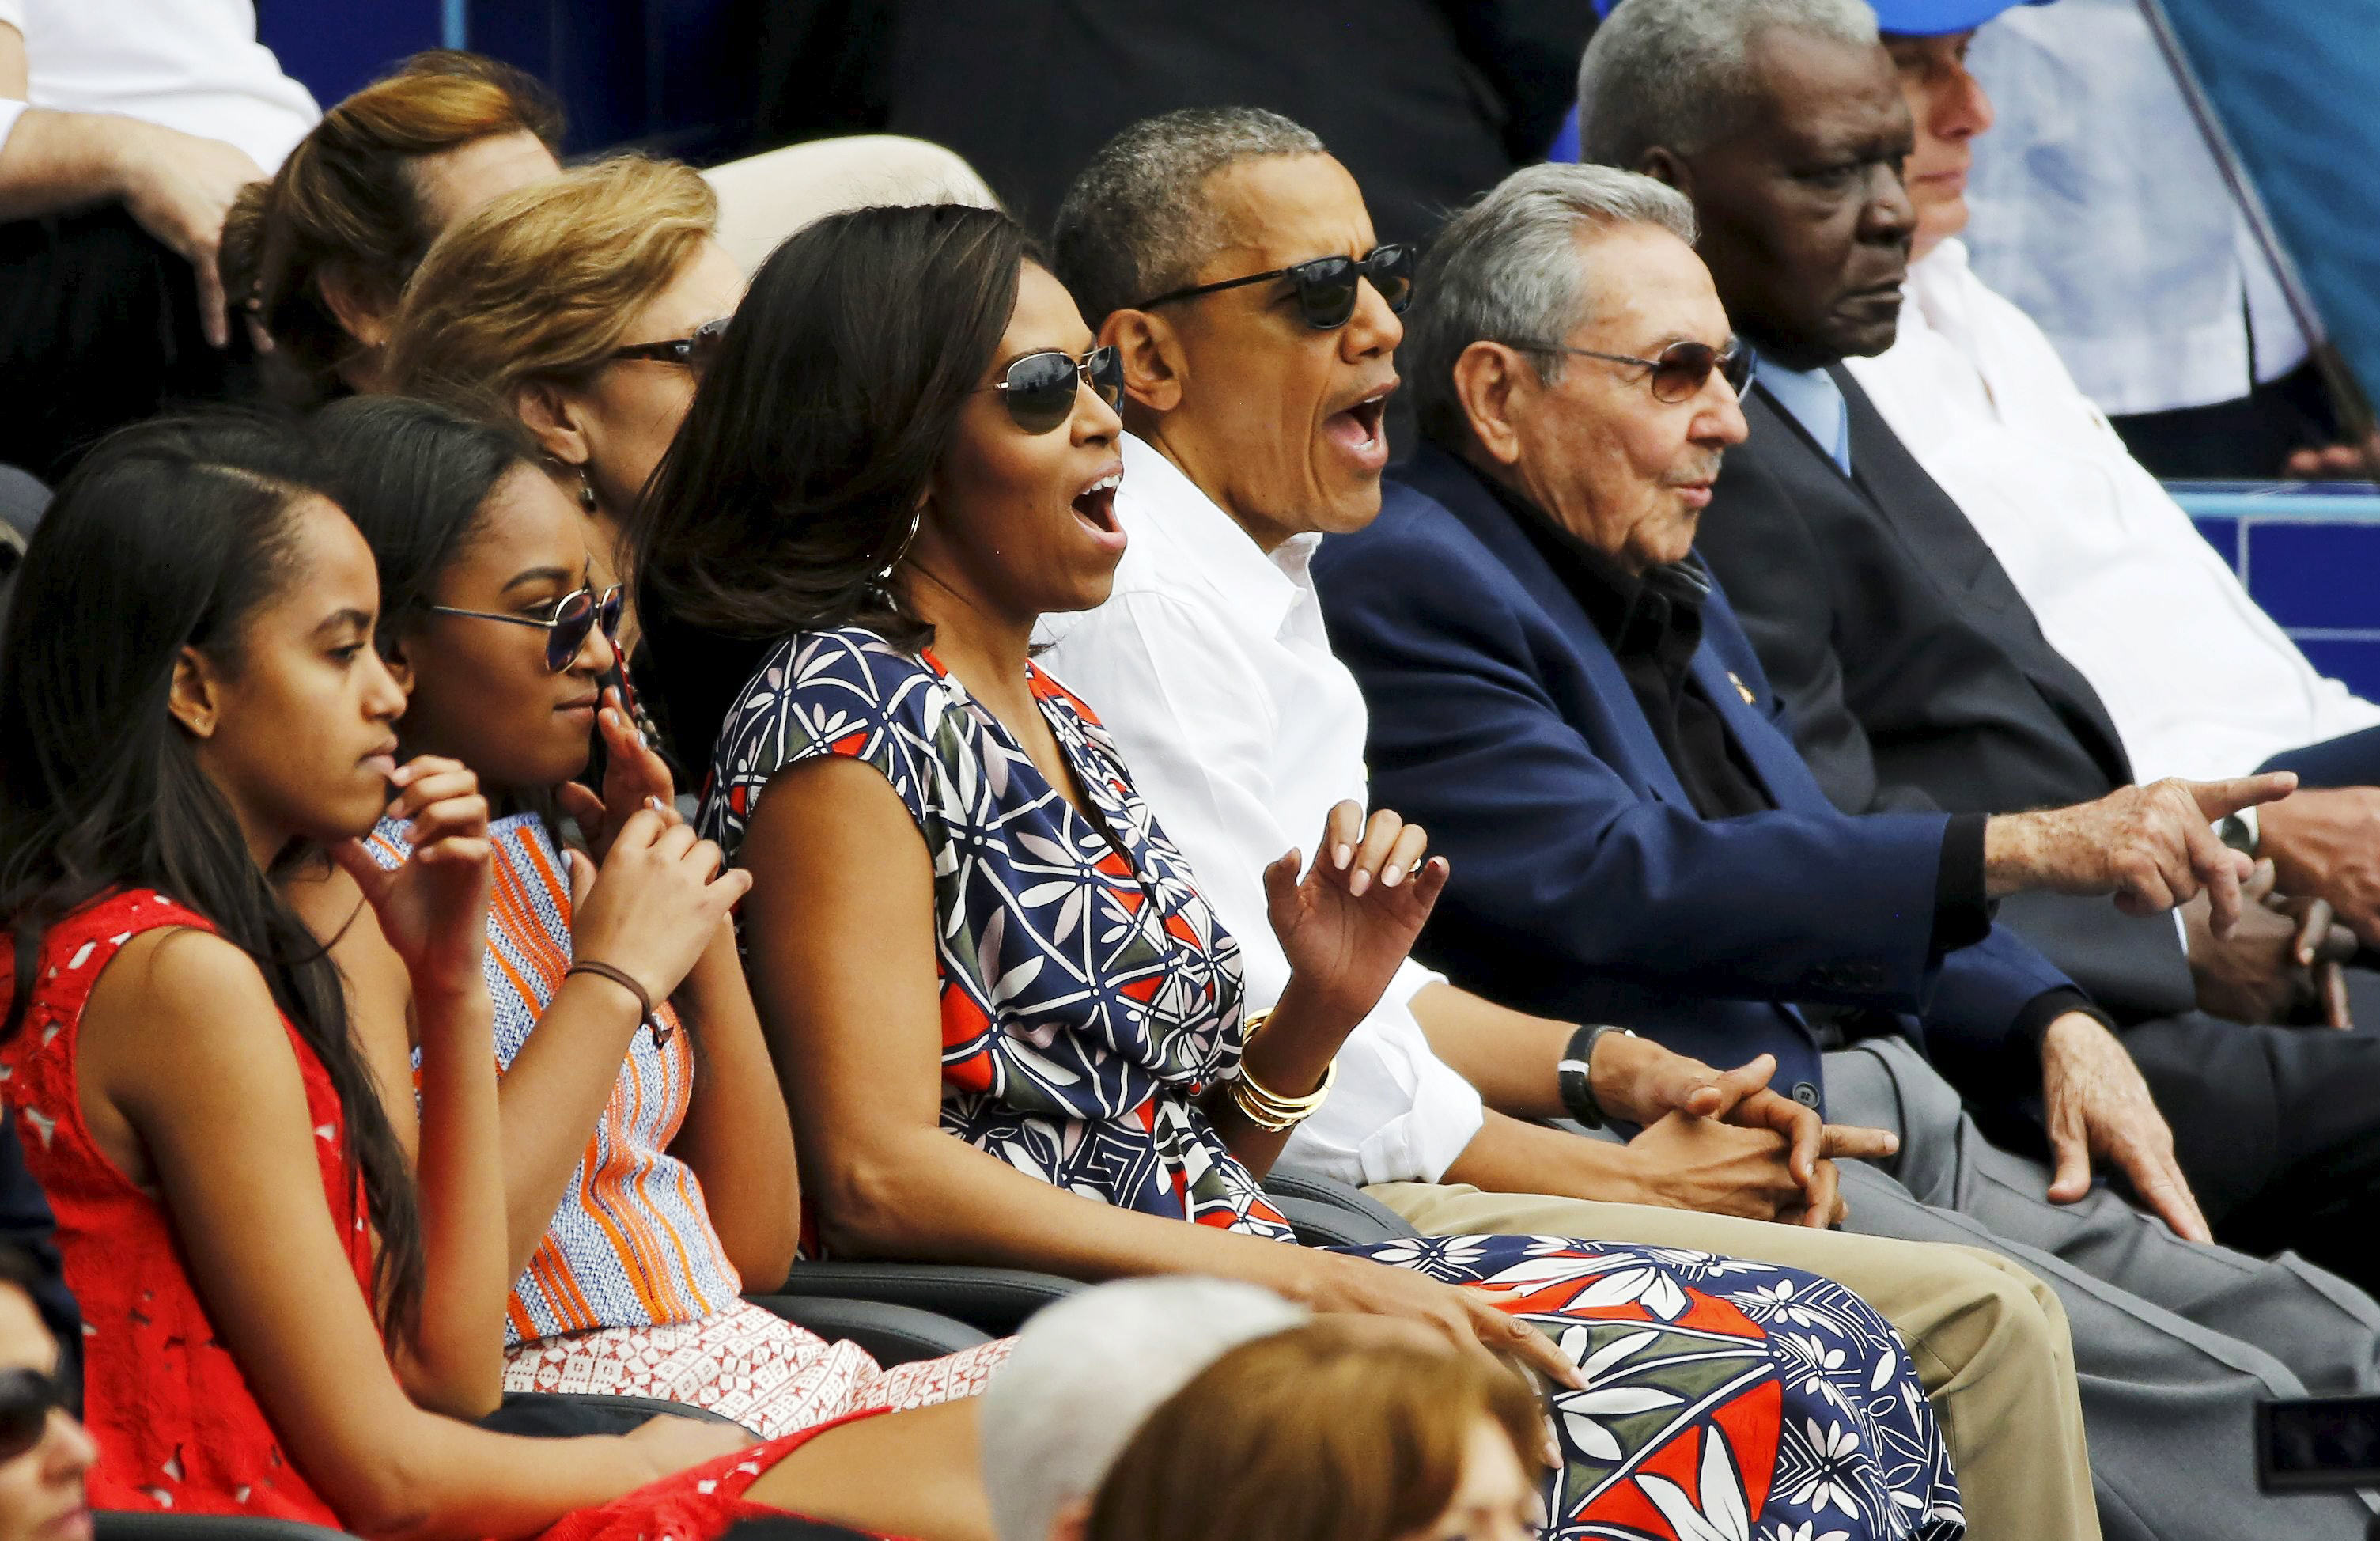 President Obama and his family watch a baseball game with Cuban President Castro in Havana on March 22.